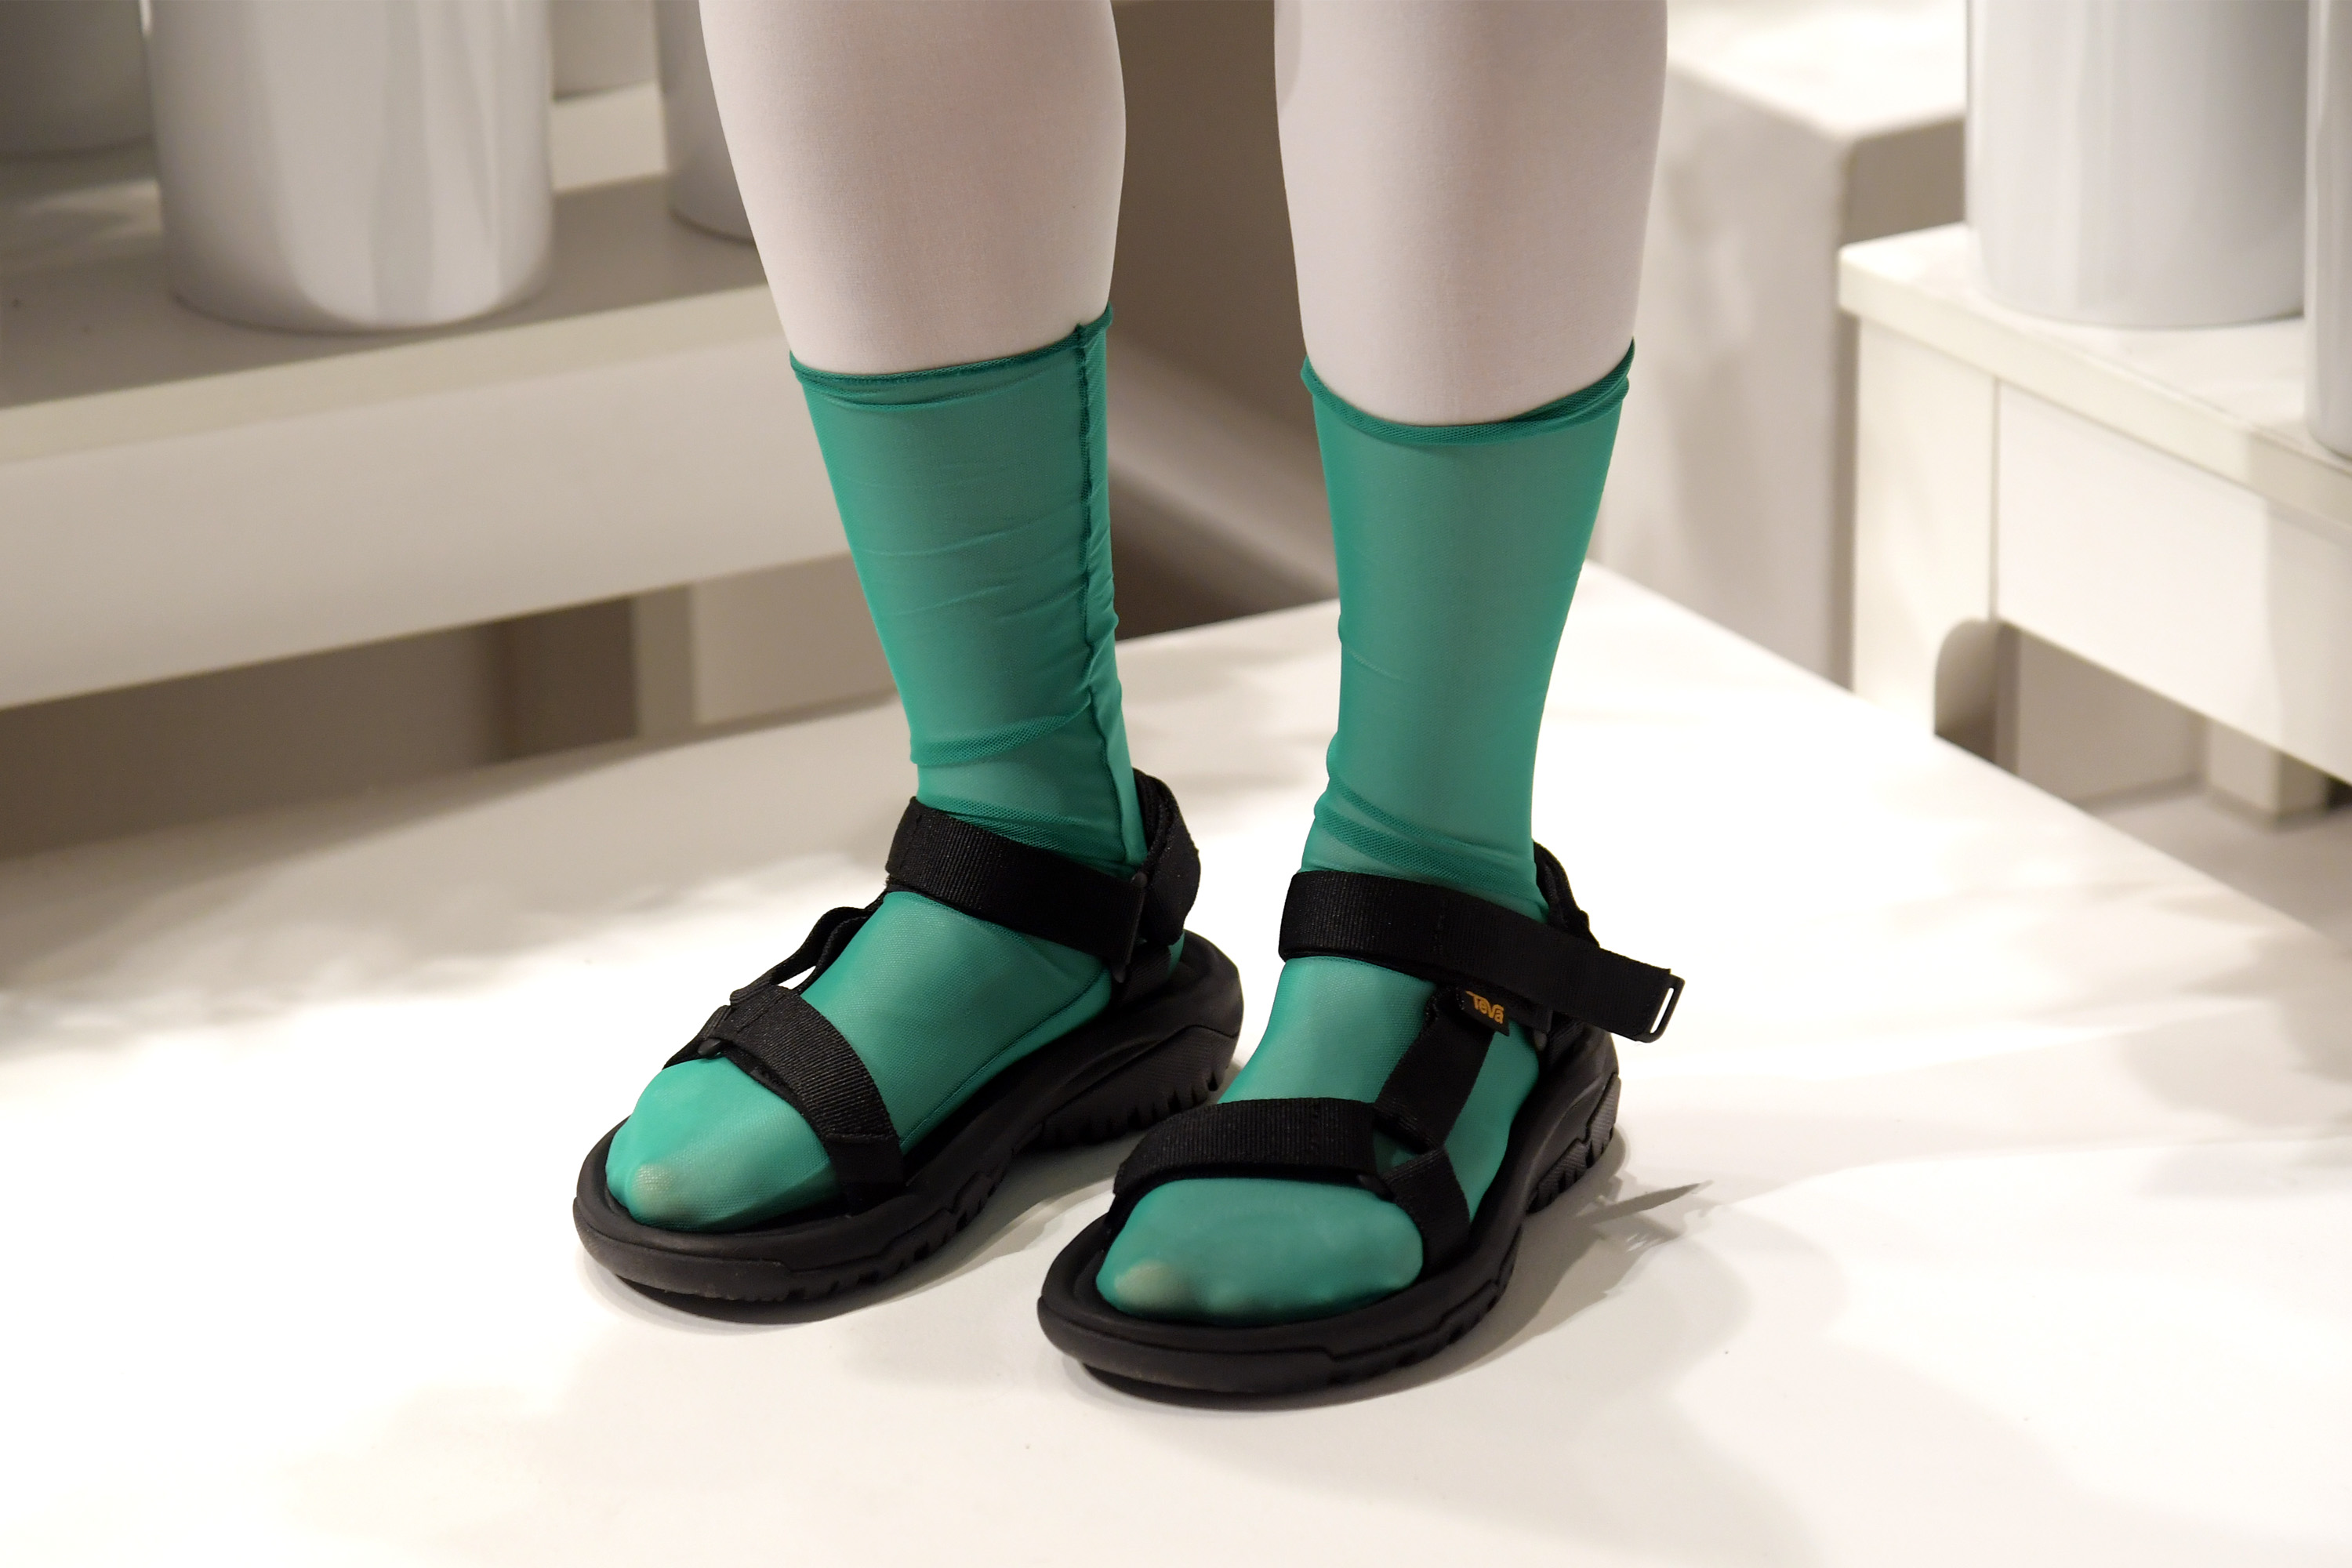 9e31e3577c728 Why Do We Persist In Wearing Socks With Sandals? - VICE